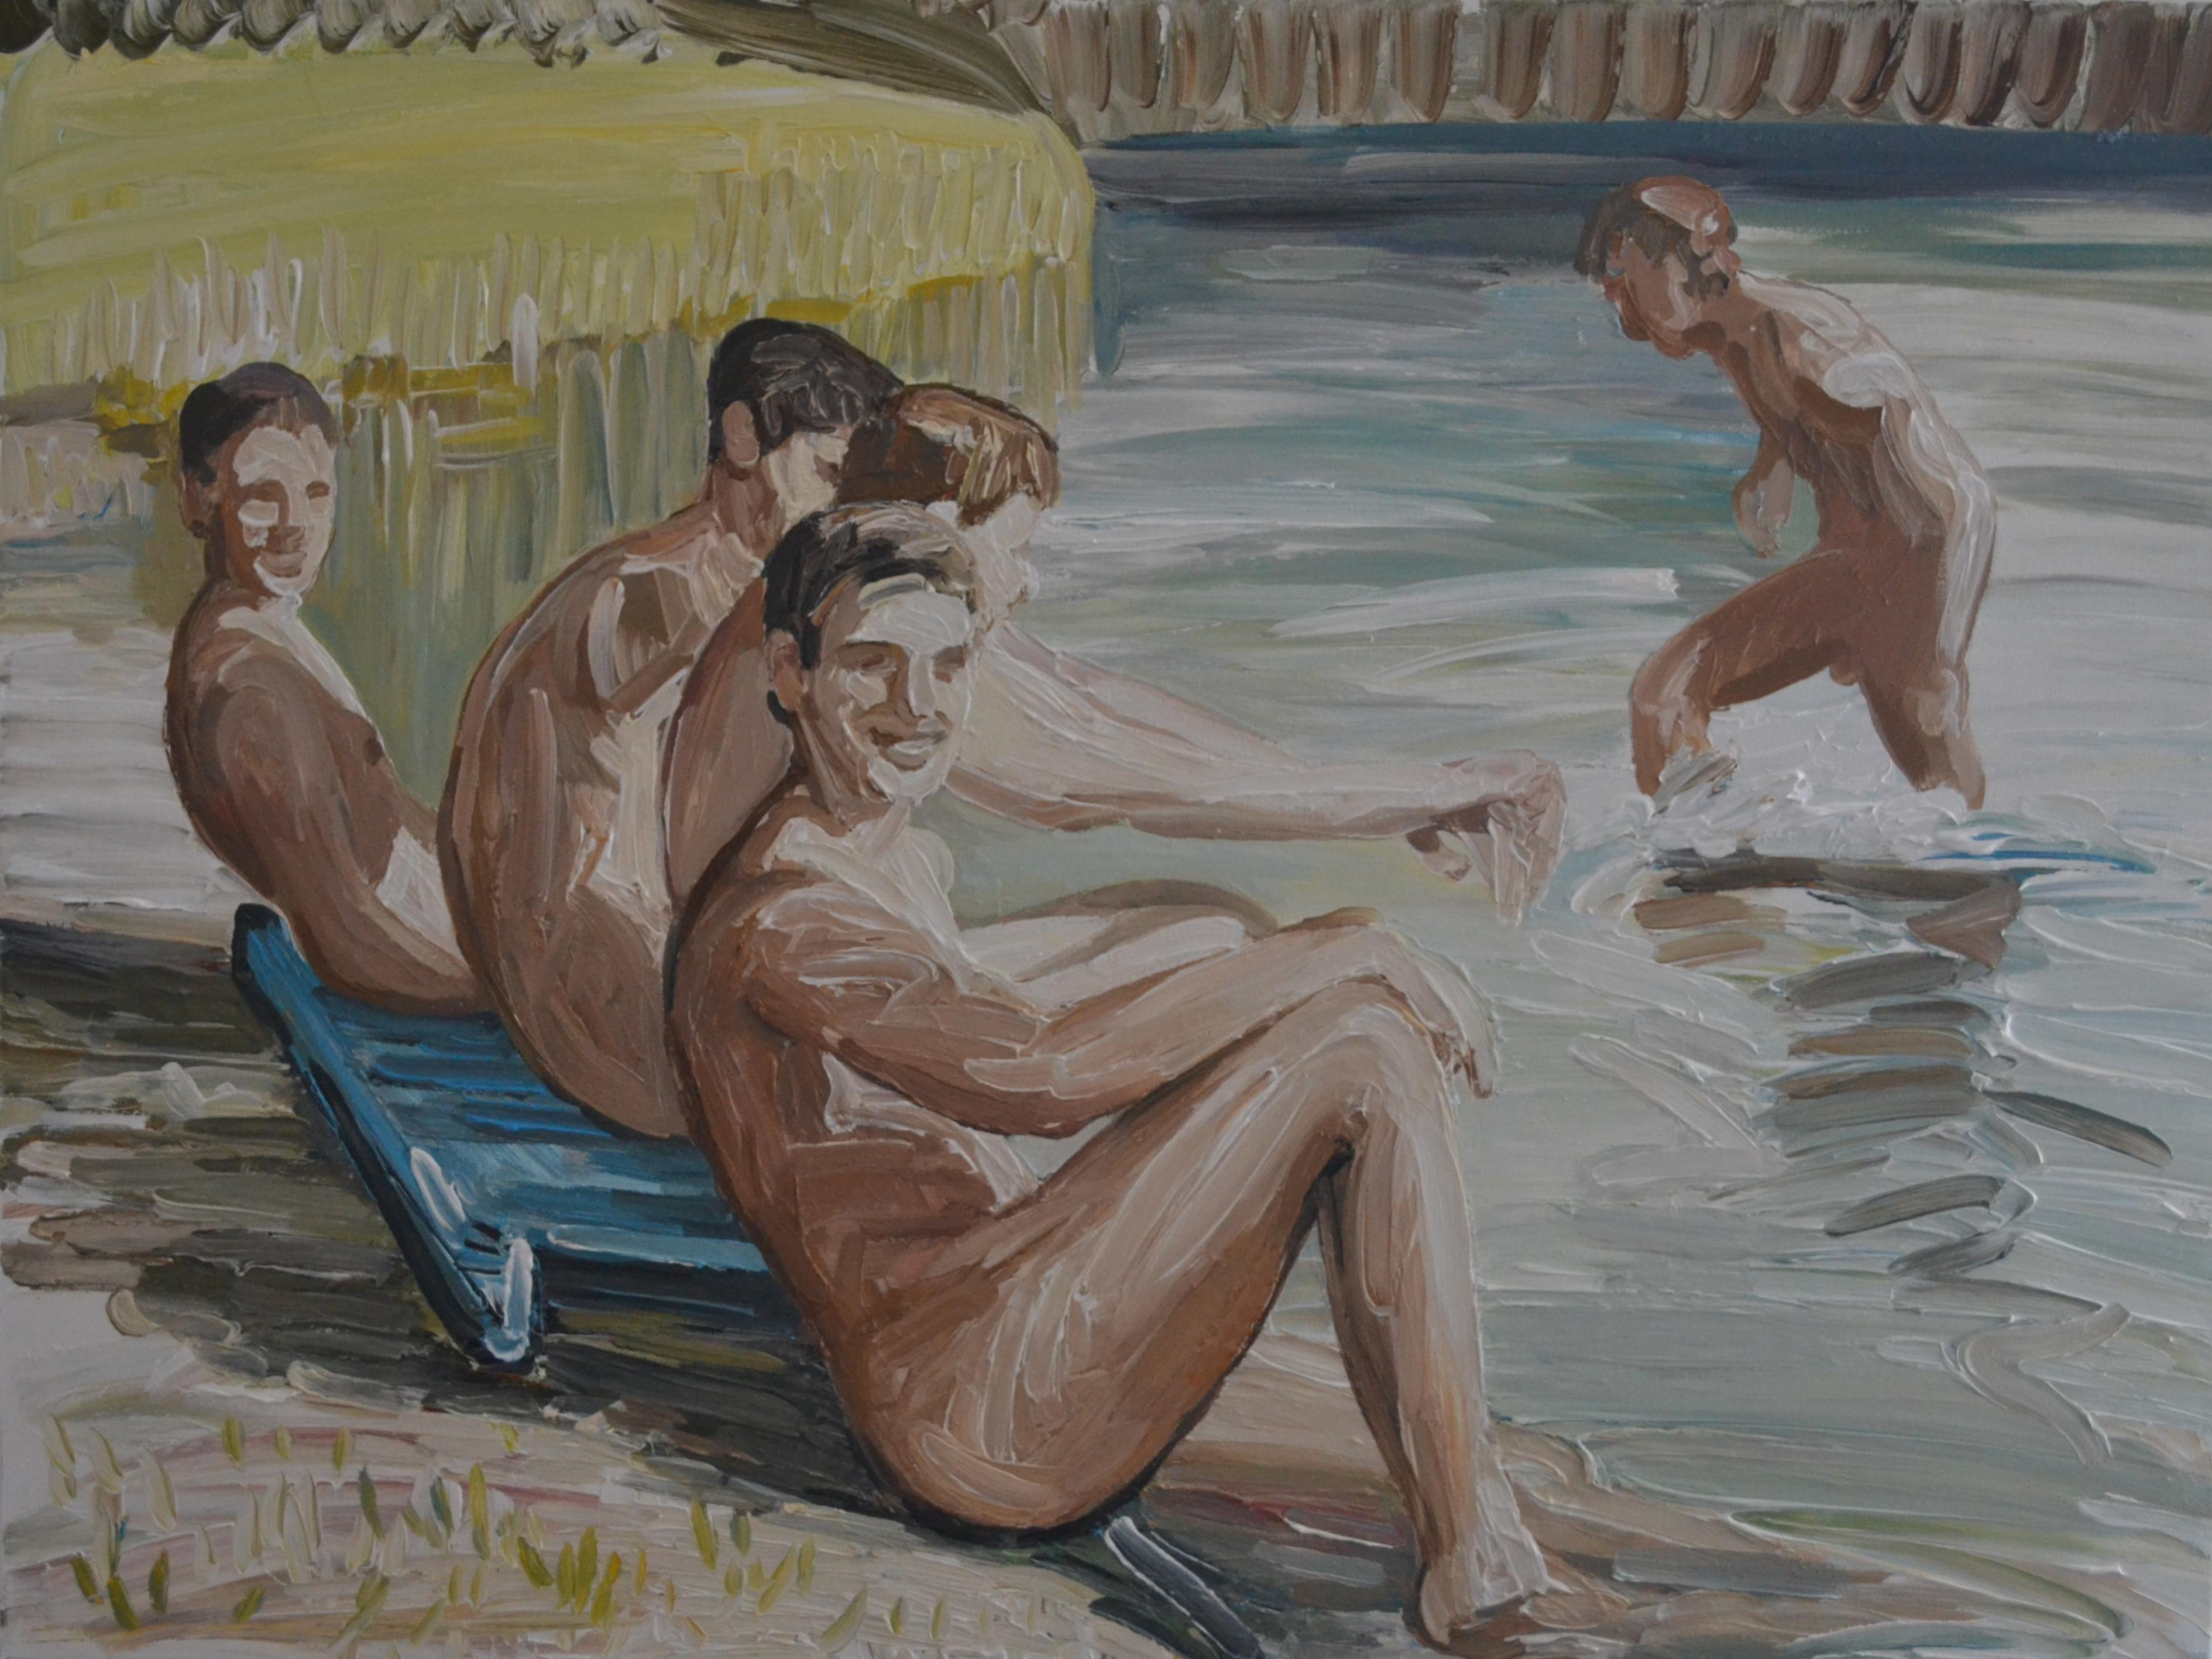 Summer - Contemporary Expressive, Figurative Oil Painting, Male Nude Series